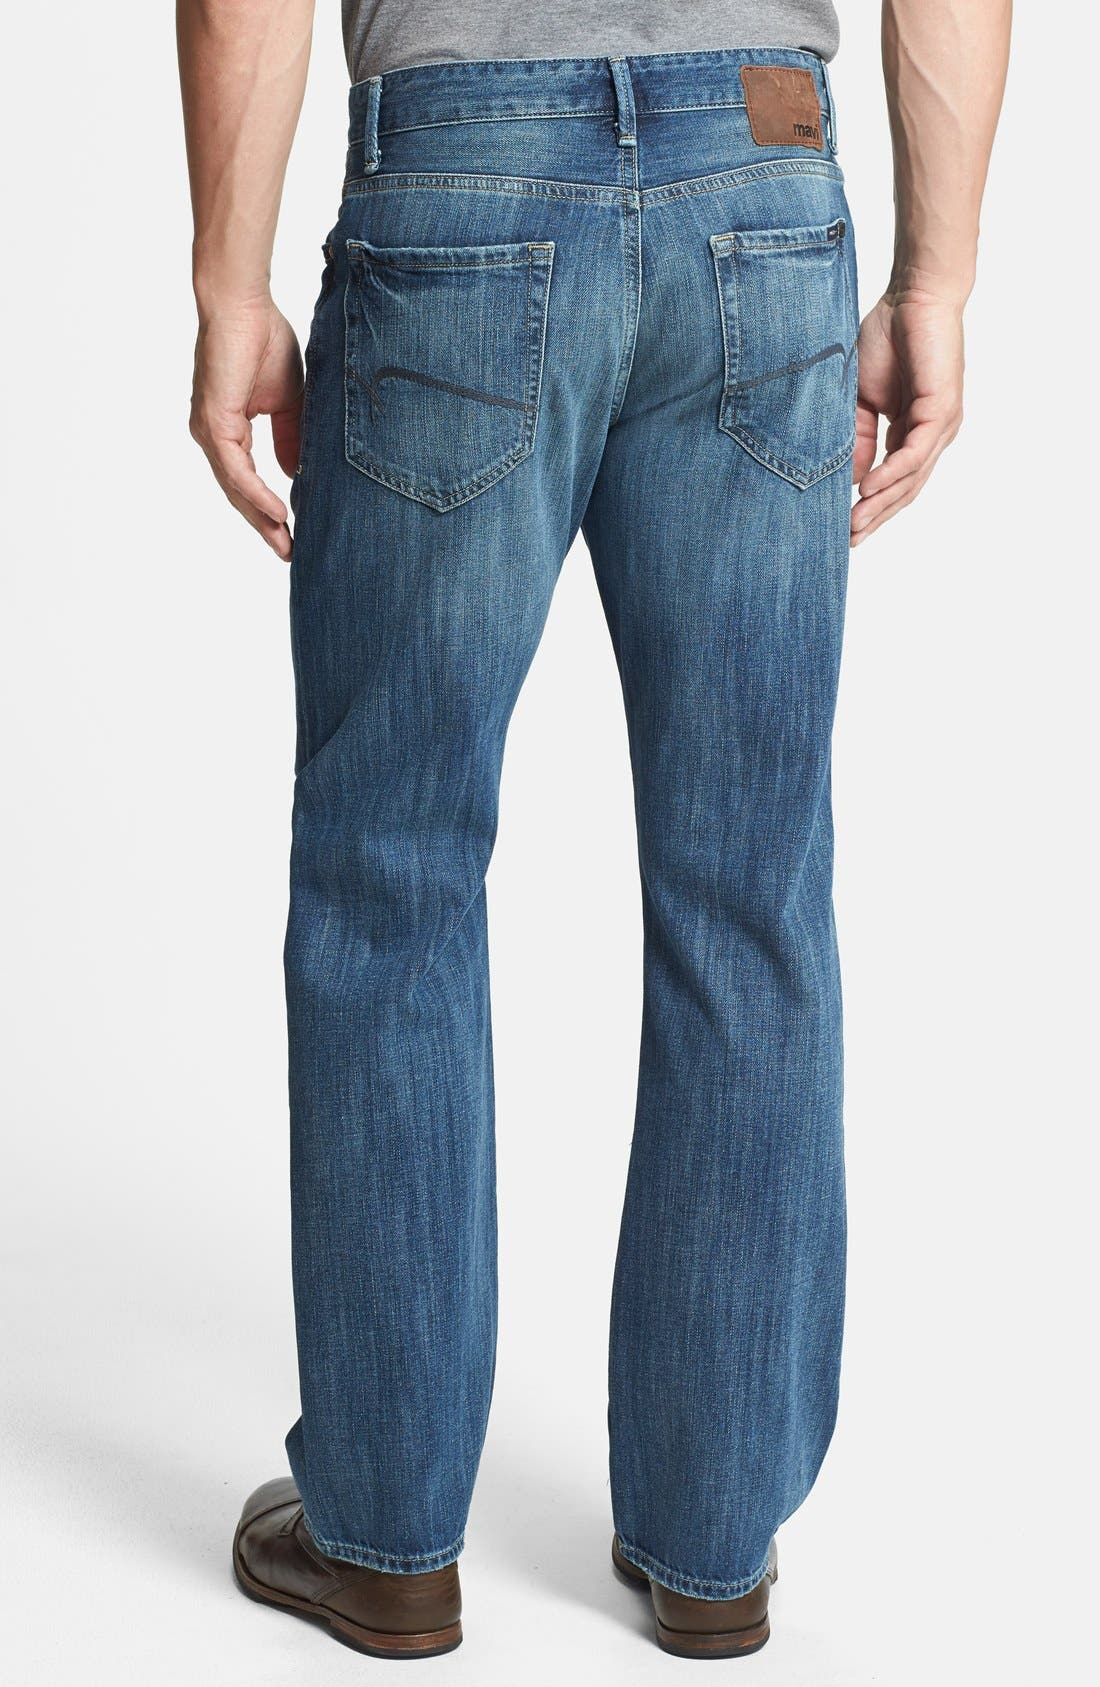 Alternate Image 2  - Mavi Jeans 'Matt' Relaxed Straight Leg Jeans (Indigo Blue) (Online Only)